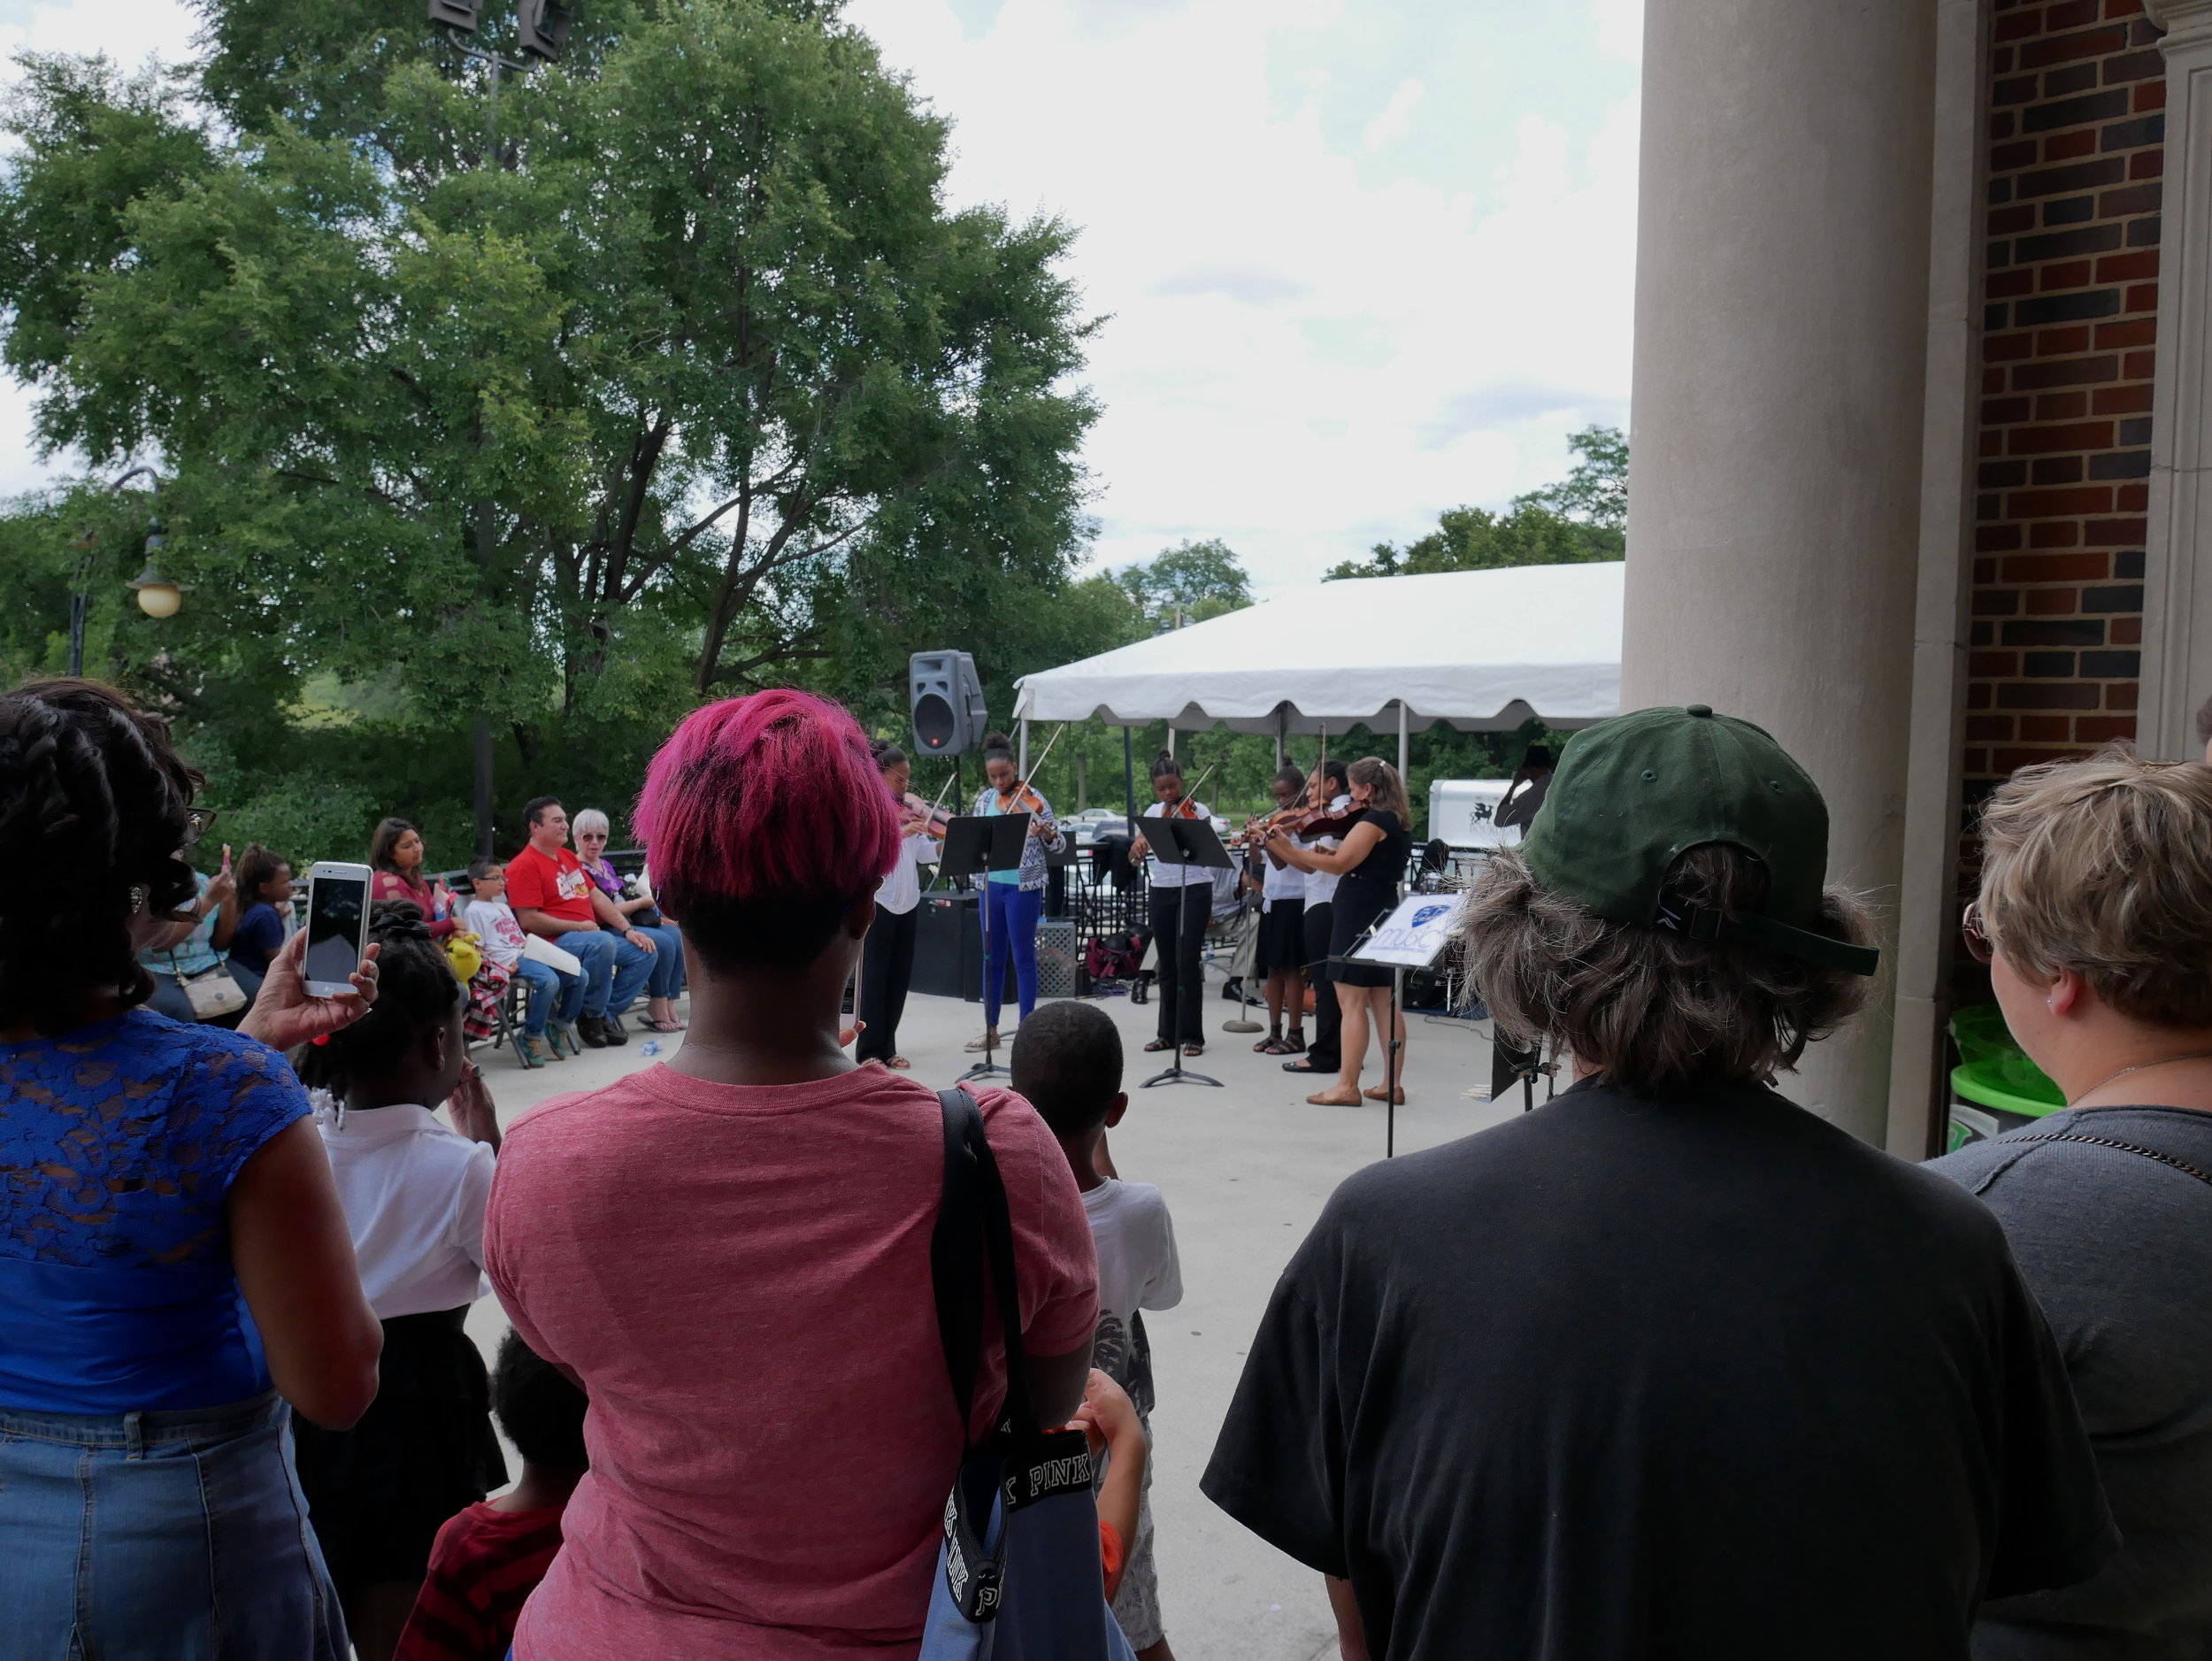 Attendees gather to listen to live music at last year's North Lawndale Arts and Culture Festival held in Douglas Park. This year's festival will be held from Friday, Aug. 3 to Sunday, Aug. 5.